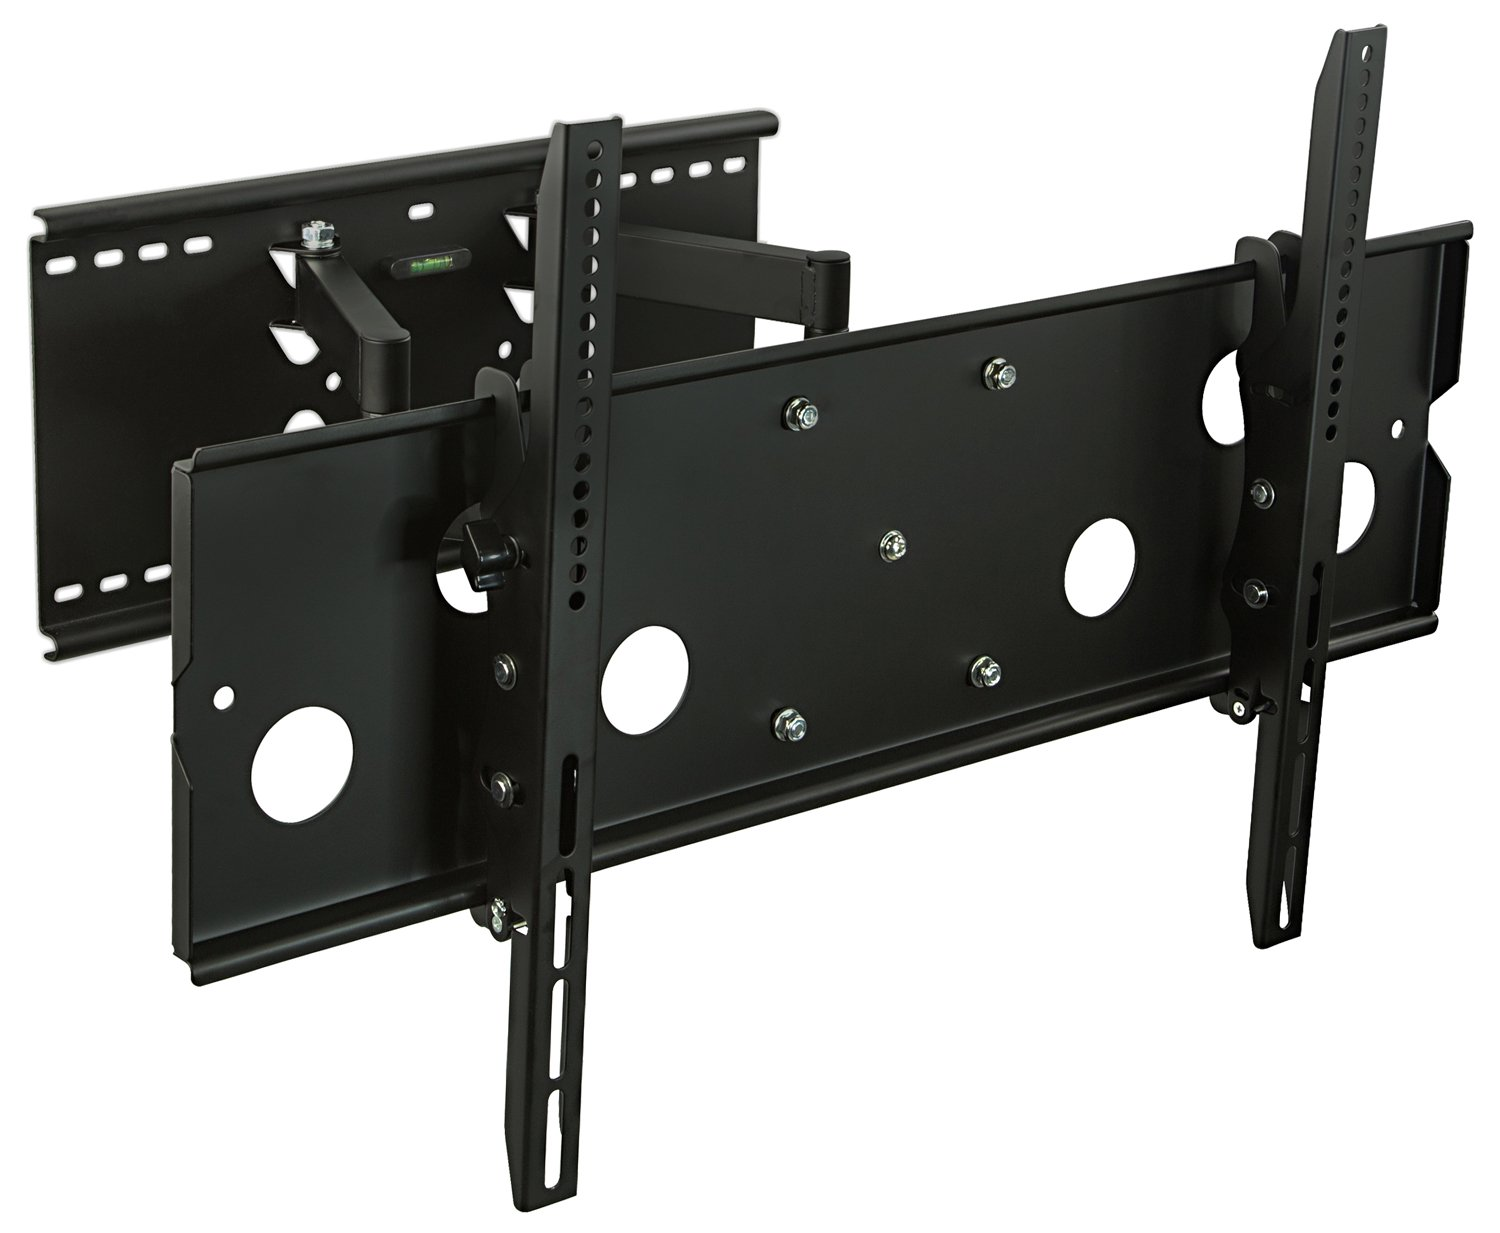 heavy duty tv wall mount articulating 42 70 inch flat screen holder rack bracket ebay. Black Bedroom Furniture Sets. Home Design Ideas